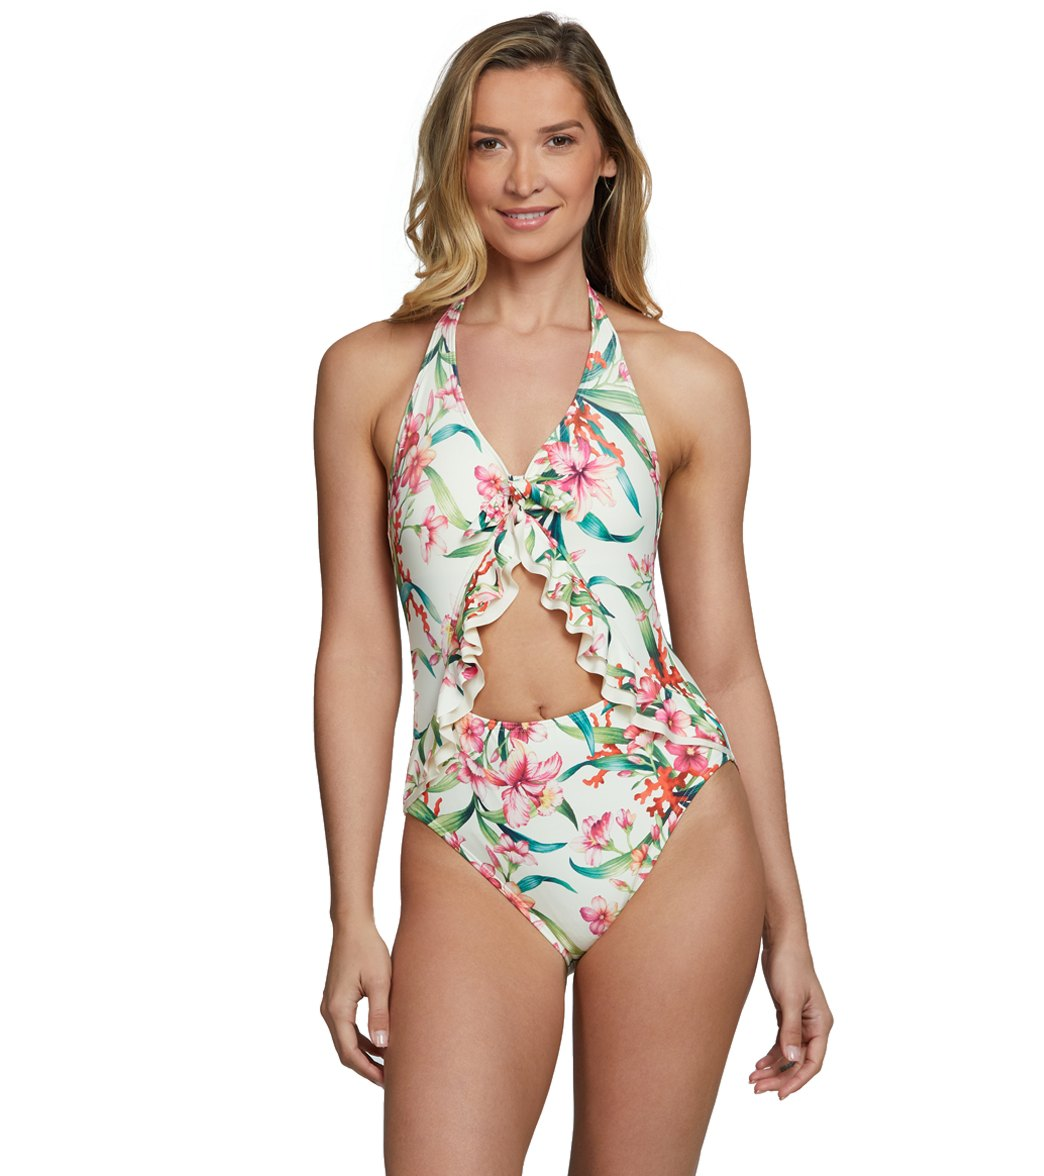 726108d1515 Carmen Marc Valvo Garden Party Ruffle Halter One Piece Swimsuit at  SwimOutlet.com - Free Shipping